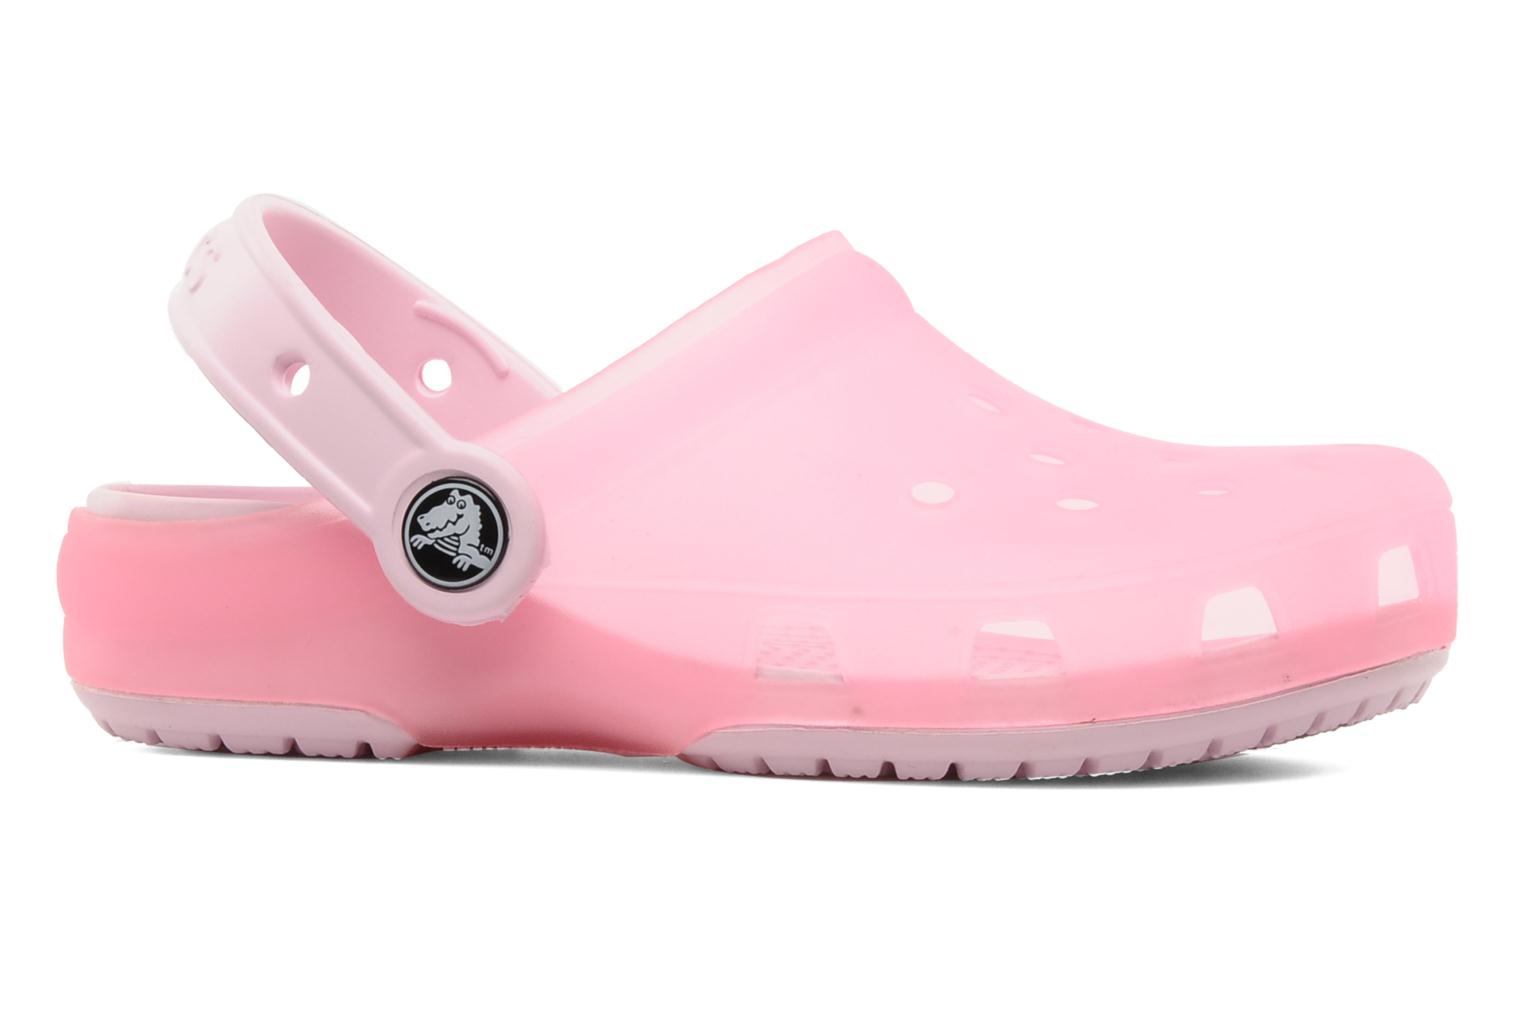 Crocs Chameleons Translucent Clog Kids Pink Lemonade-Bubblegum